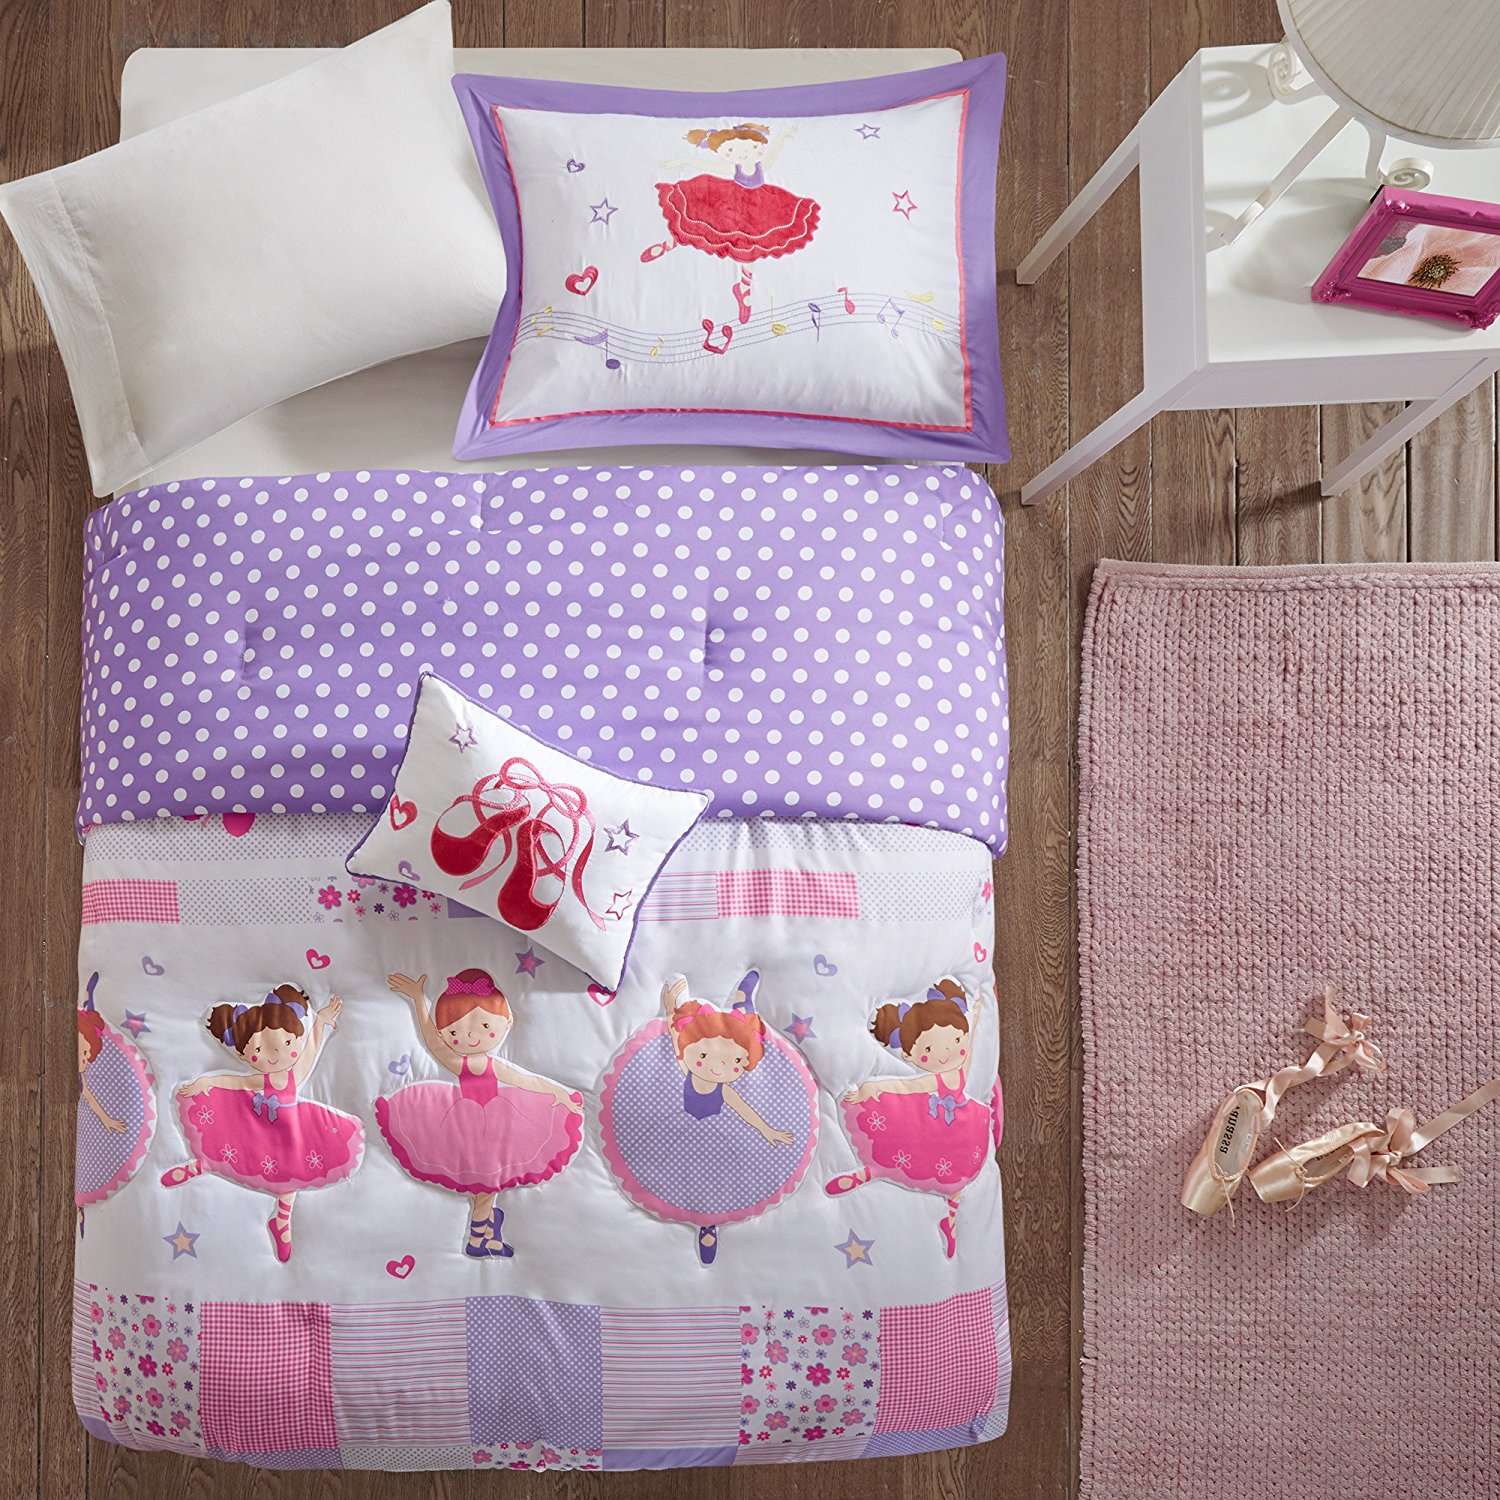 4 Piece Girls Purple Pink Character Floral Comforter Full Queen Set, White Red Flowers Printed Ballerinas Dancing Girl Duchess Kids Bedding Teen Bedroom Casual Elegant Gorgeous, Polyester